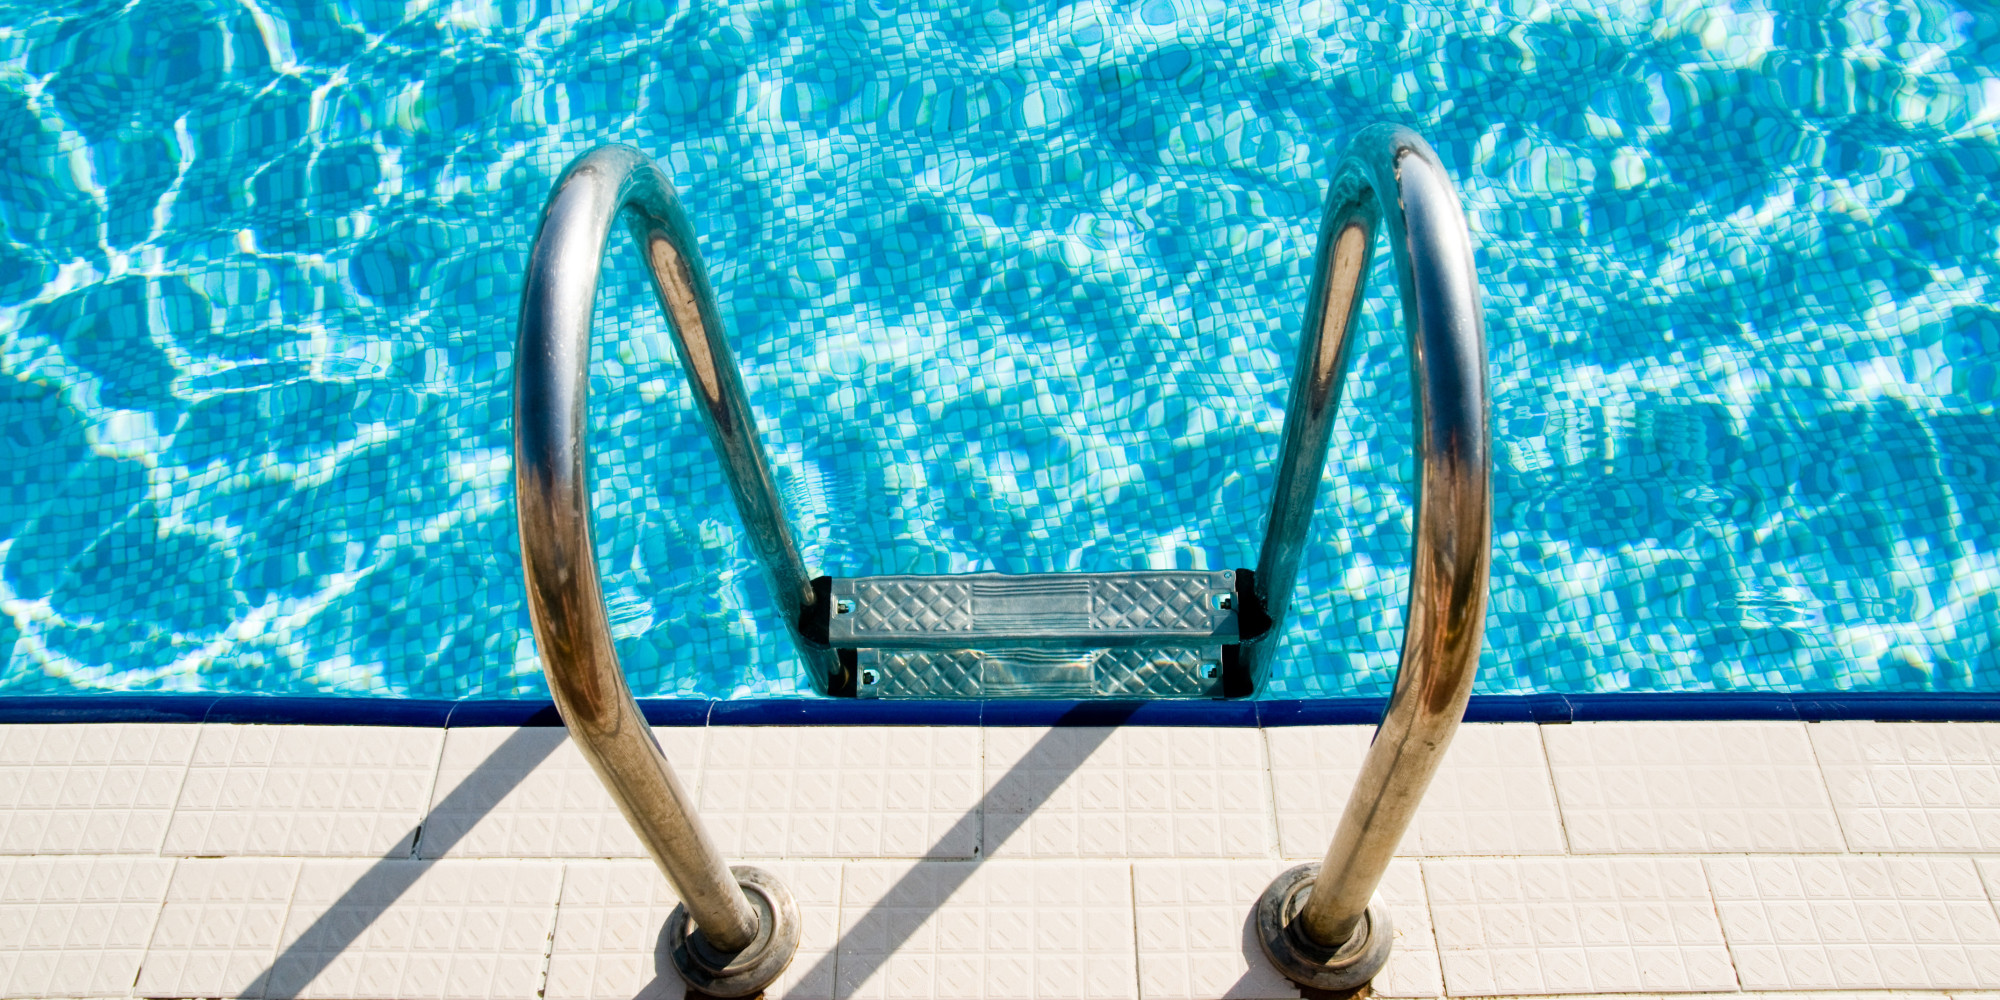 Swimming Pools Ban Extended Breath Holding In Wake Of